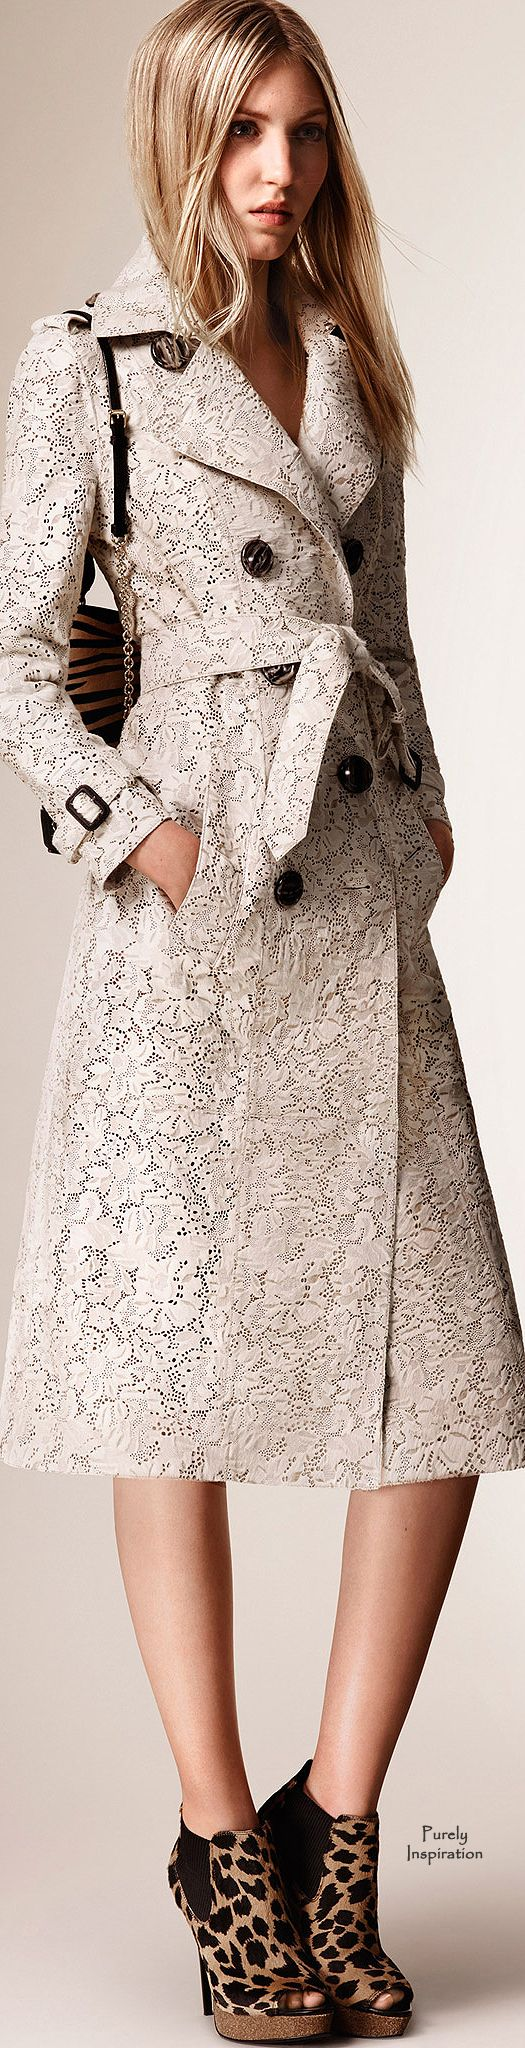 Burberry Prorsum Resort 2016 RTW | Purely Inspiration http://www.style.com/fashion-shows/resort-2016/burberry-prorsum/collection